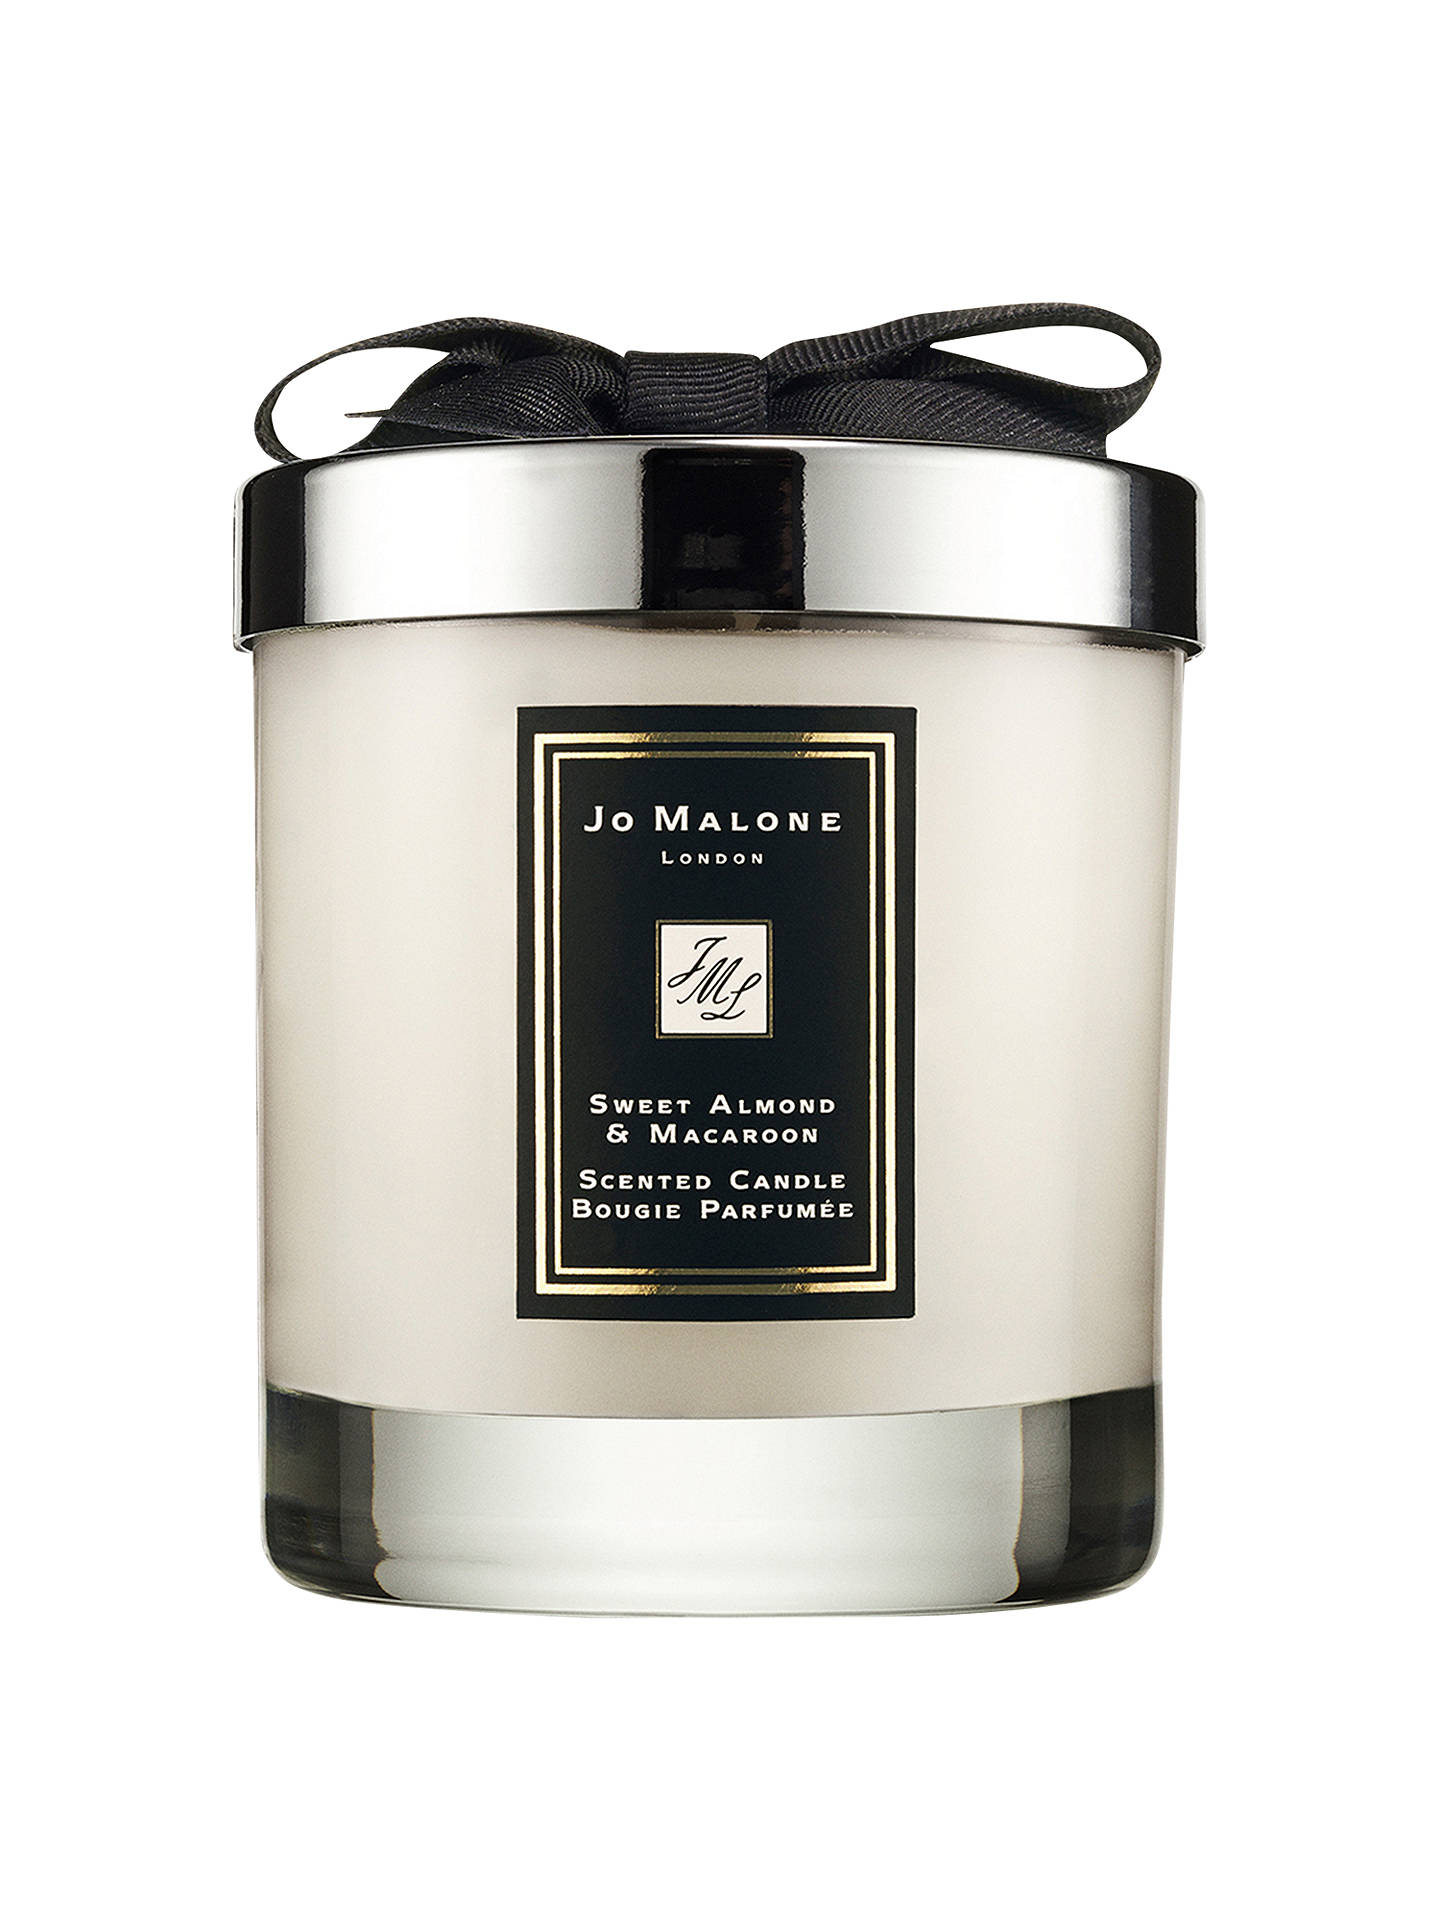 BuyJo Malone London Sweet Almond & Macaroon Scented Candle, 200g Online at johnlewis.com